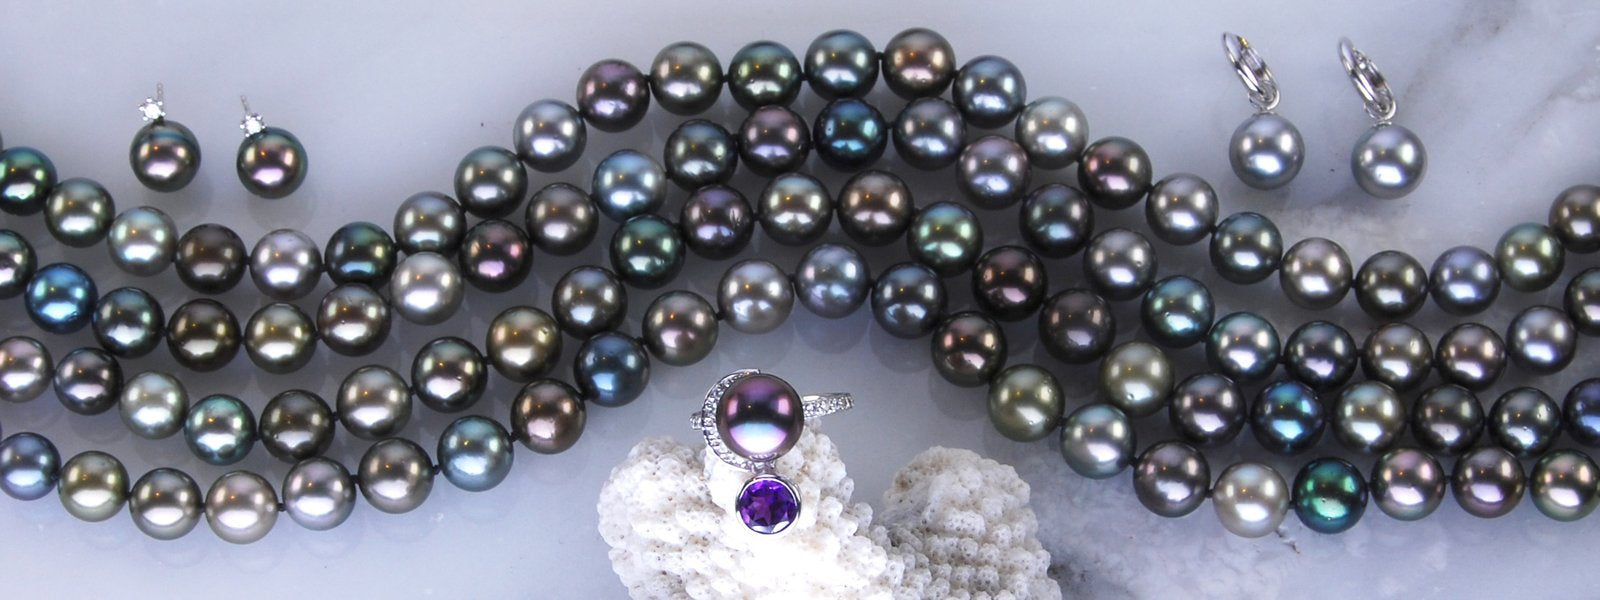 Cultured freshwater pearl Jewellery UK